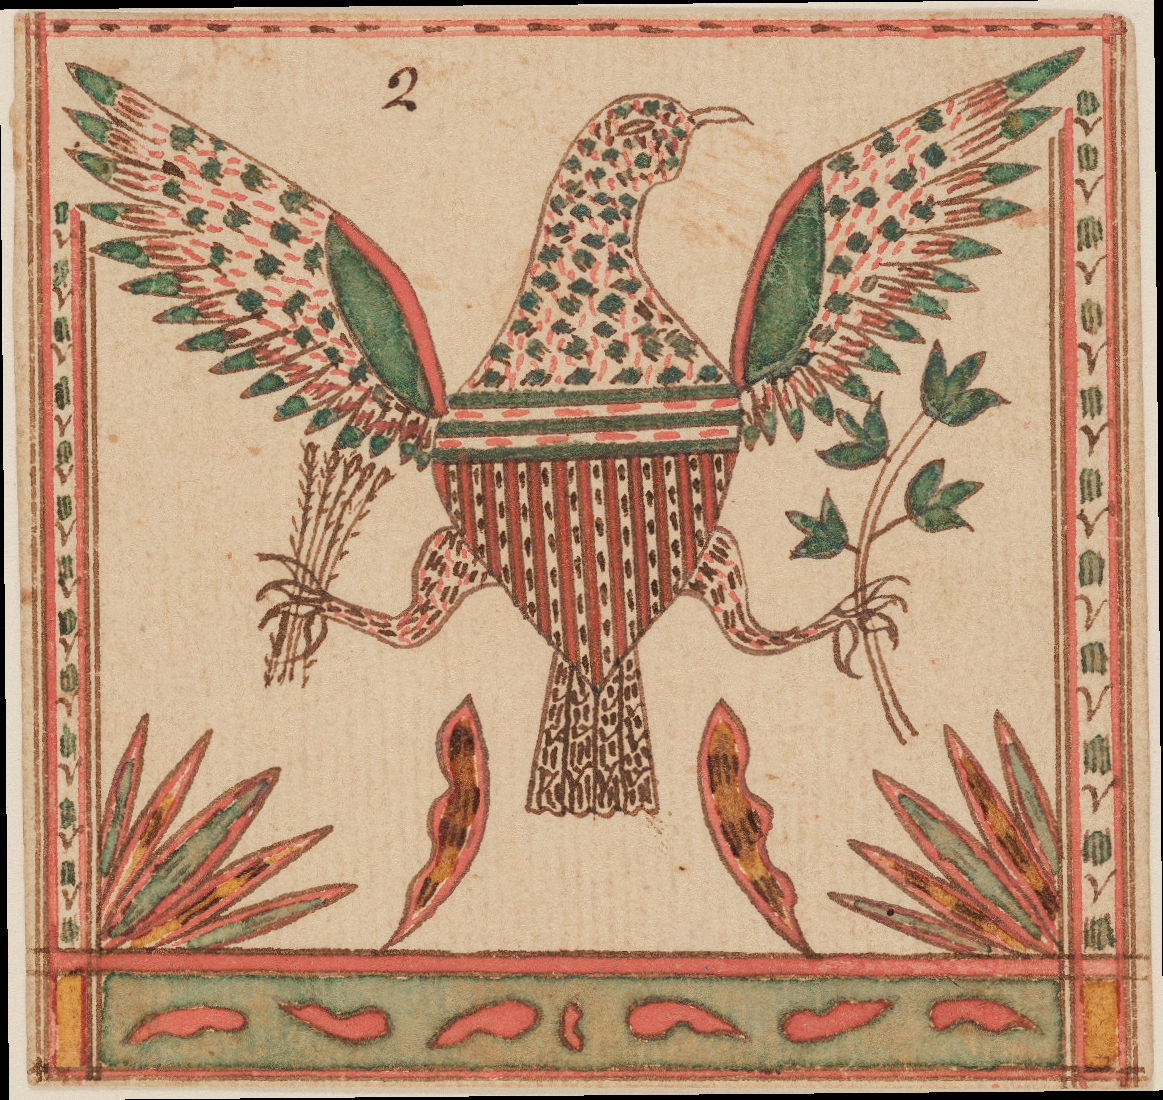 Drawing of an American eagle, attributed to Johann Adam Eyer, probably Monroe County, Pa., ca. 1800. Watercolor and ink on wove paper, 3¼ x 3½ in. Museum purchase with funds provided by the Henry Francis du Pont Collectors Circle 2013.31.53